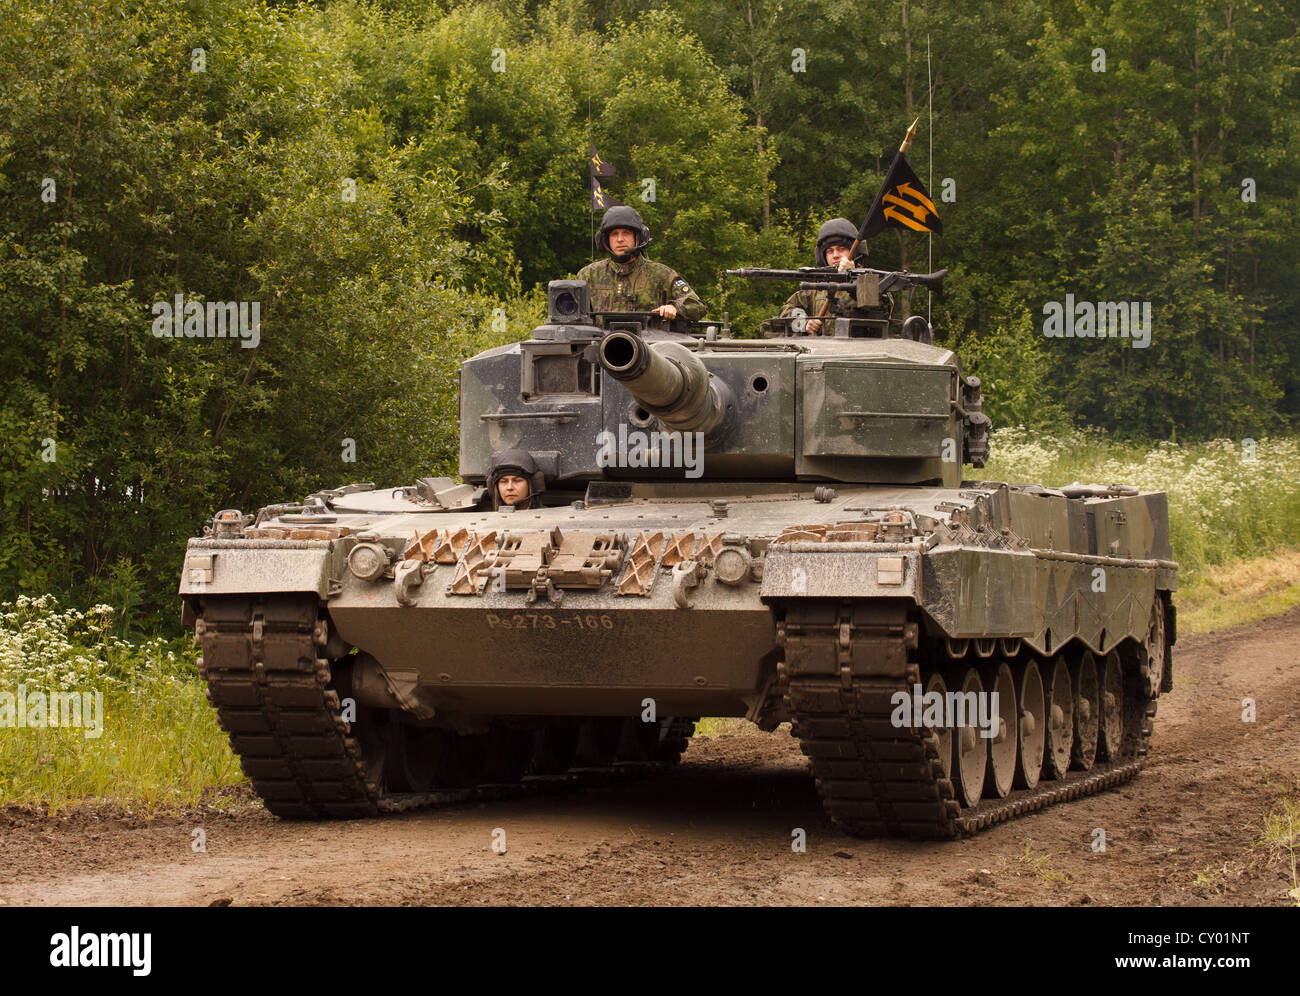 Leopard 2 A4 main battle tank of the Finnish Army. - Stock Image